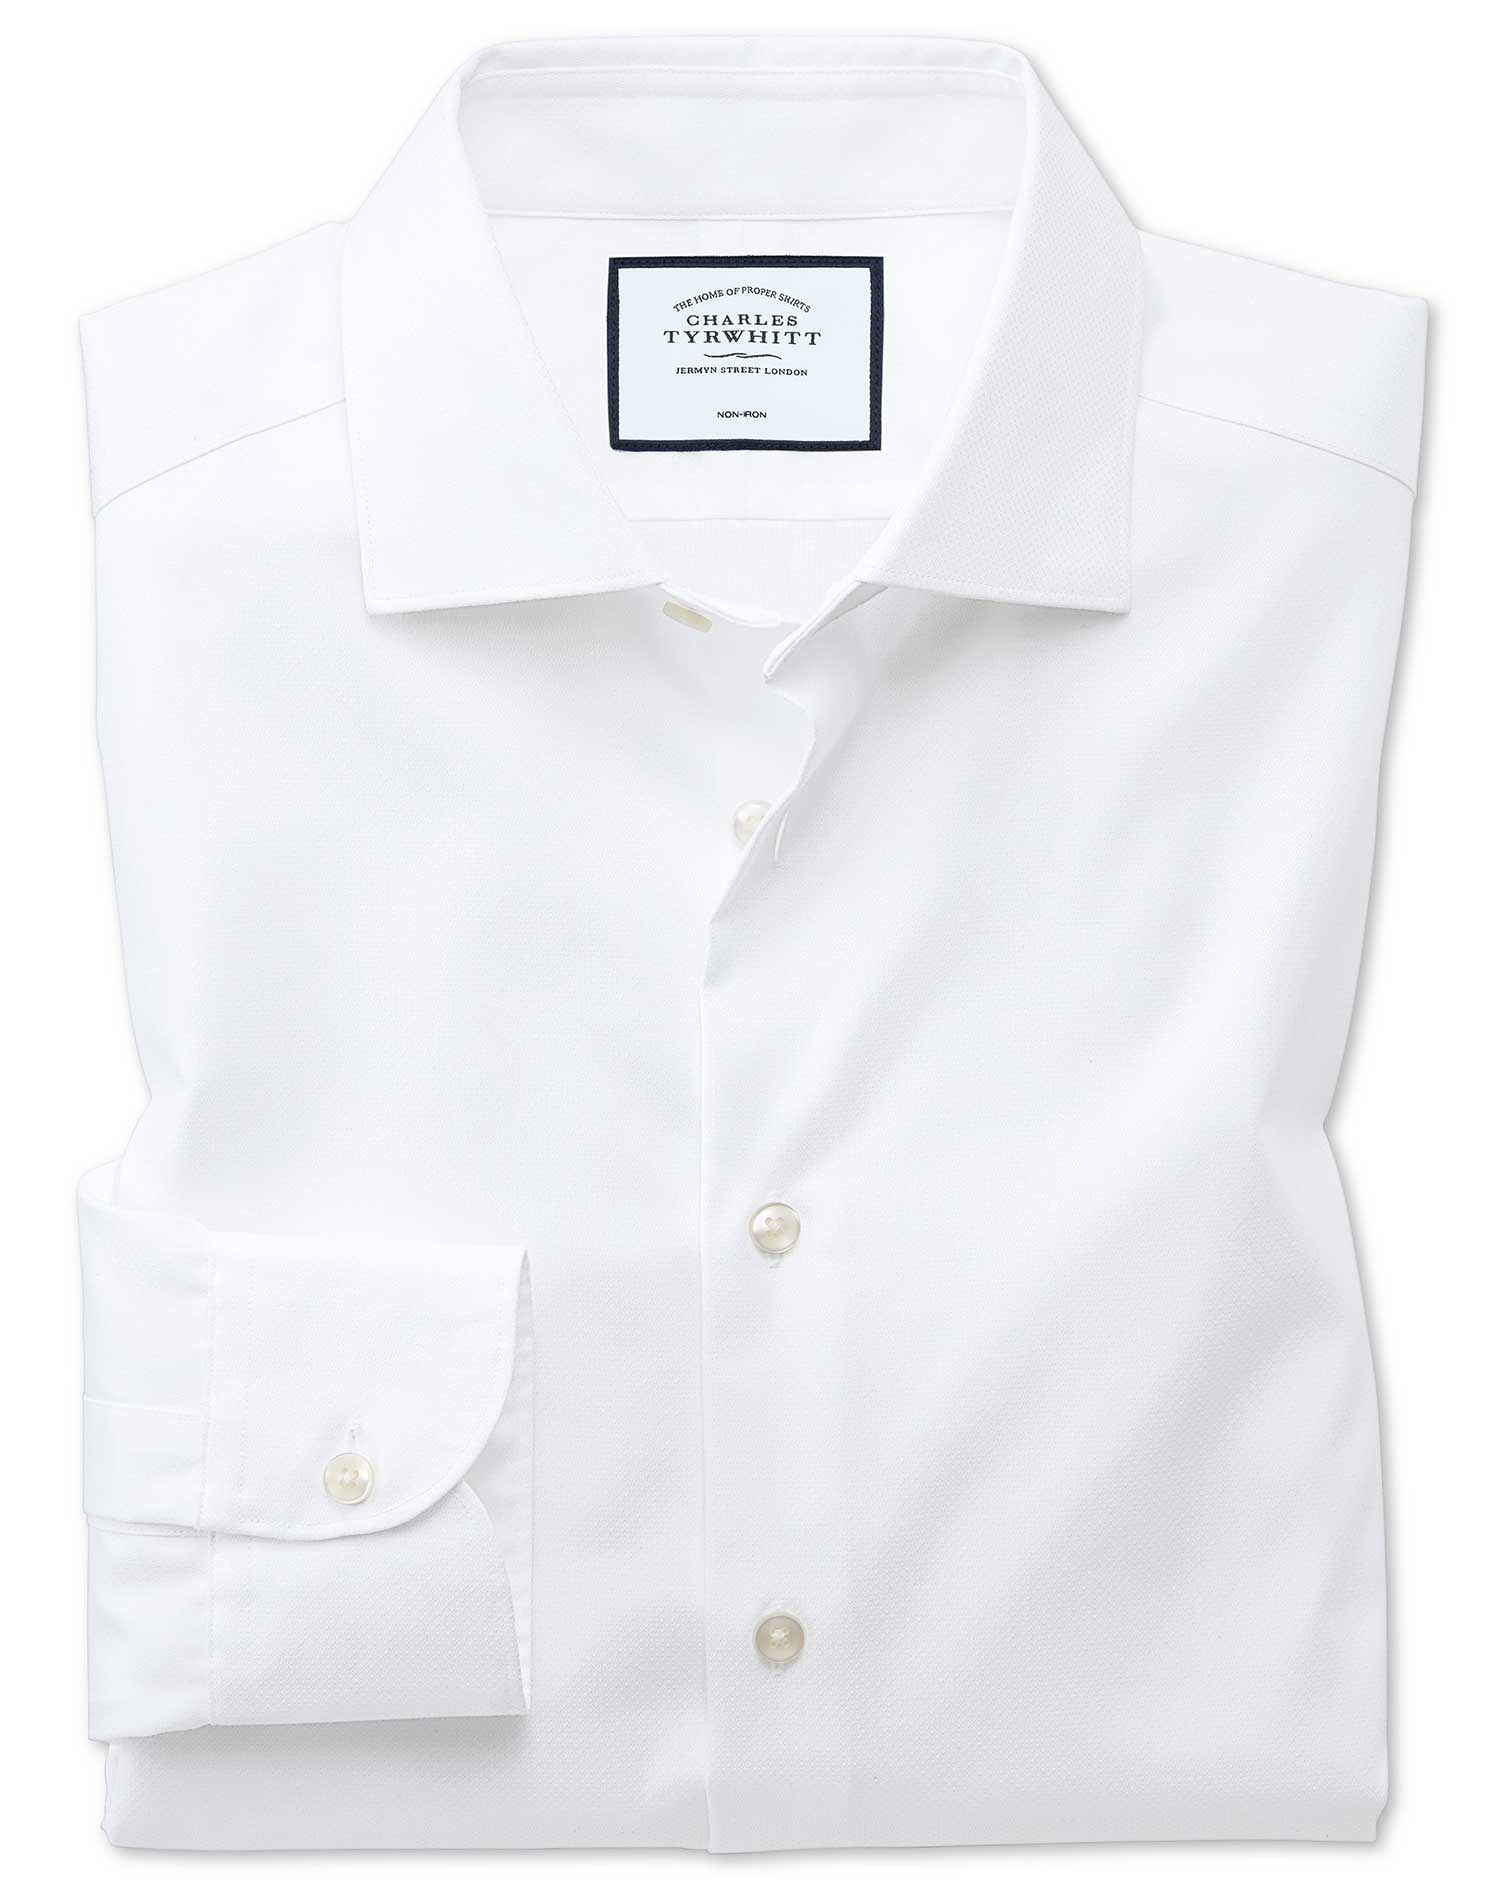 Extra Slim Fit Business Casual Non-Iron Modern Textures White Cotton Formal Shirt Single Cuff Size 1